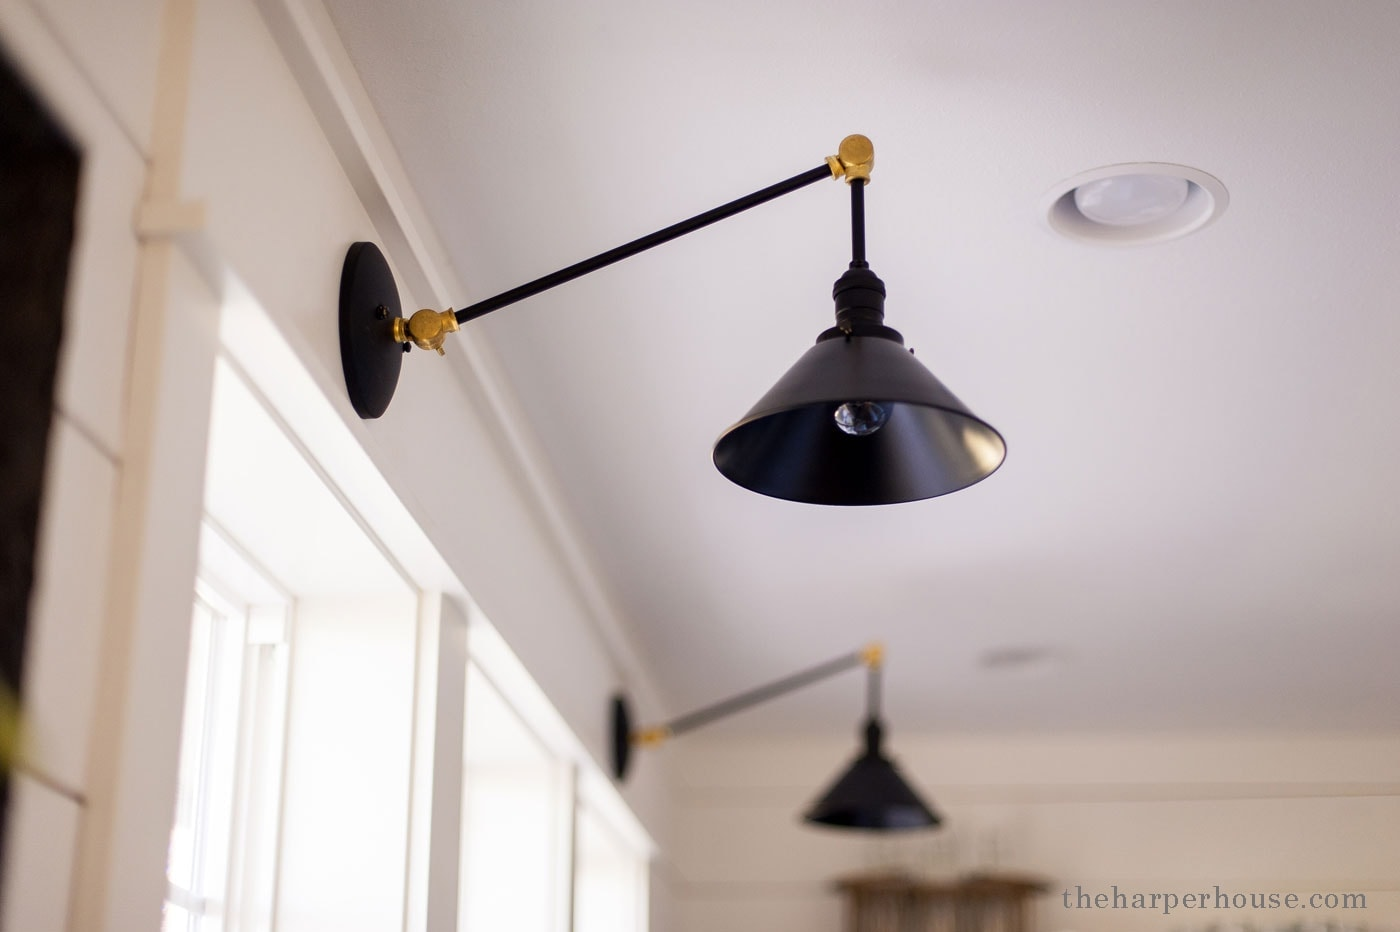 custom sconces from etsy in the modern farmhouse kitchen. Get sources & links on the blog | www.theharperhouse.com